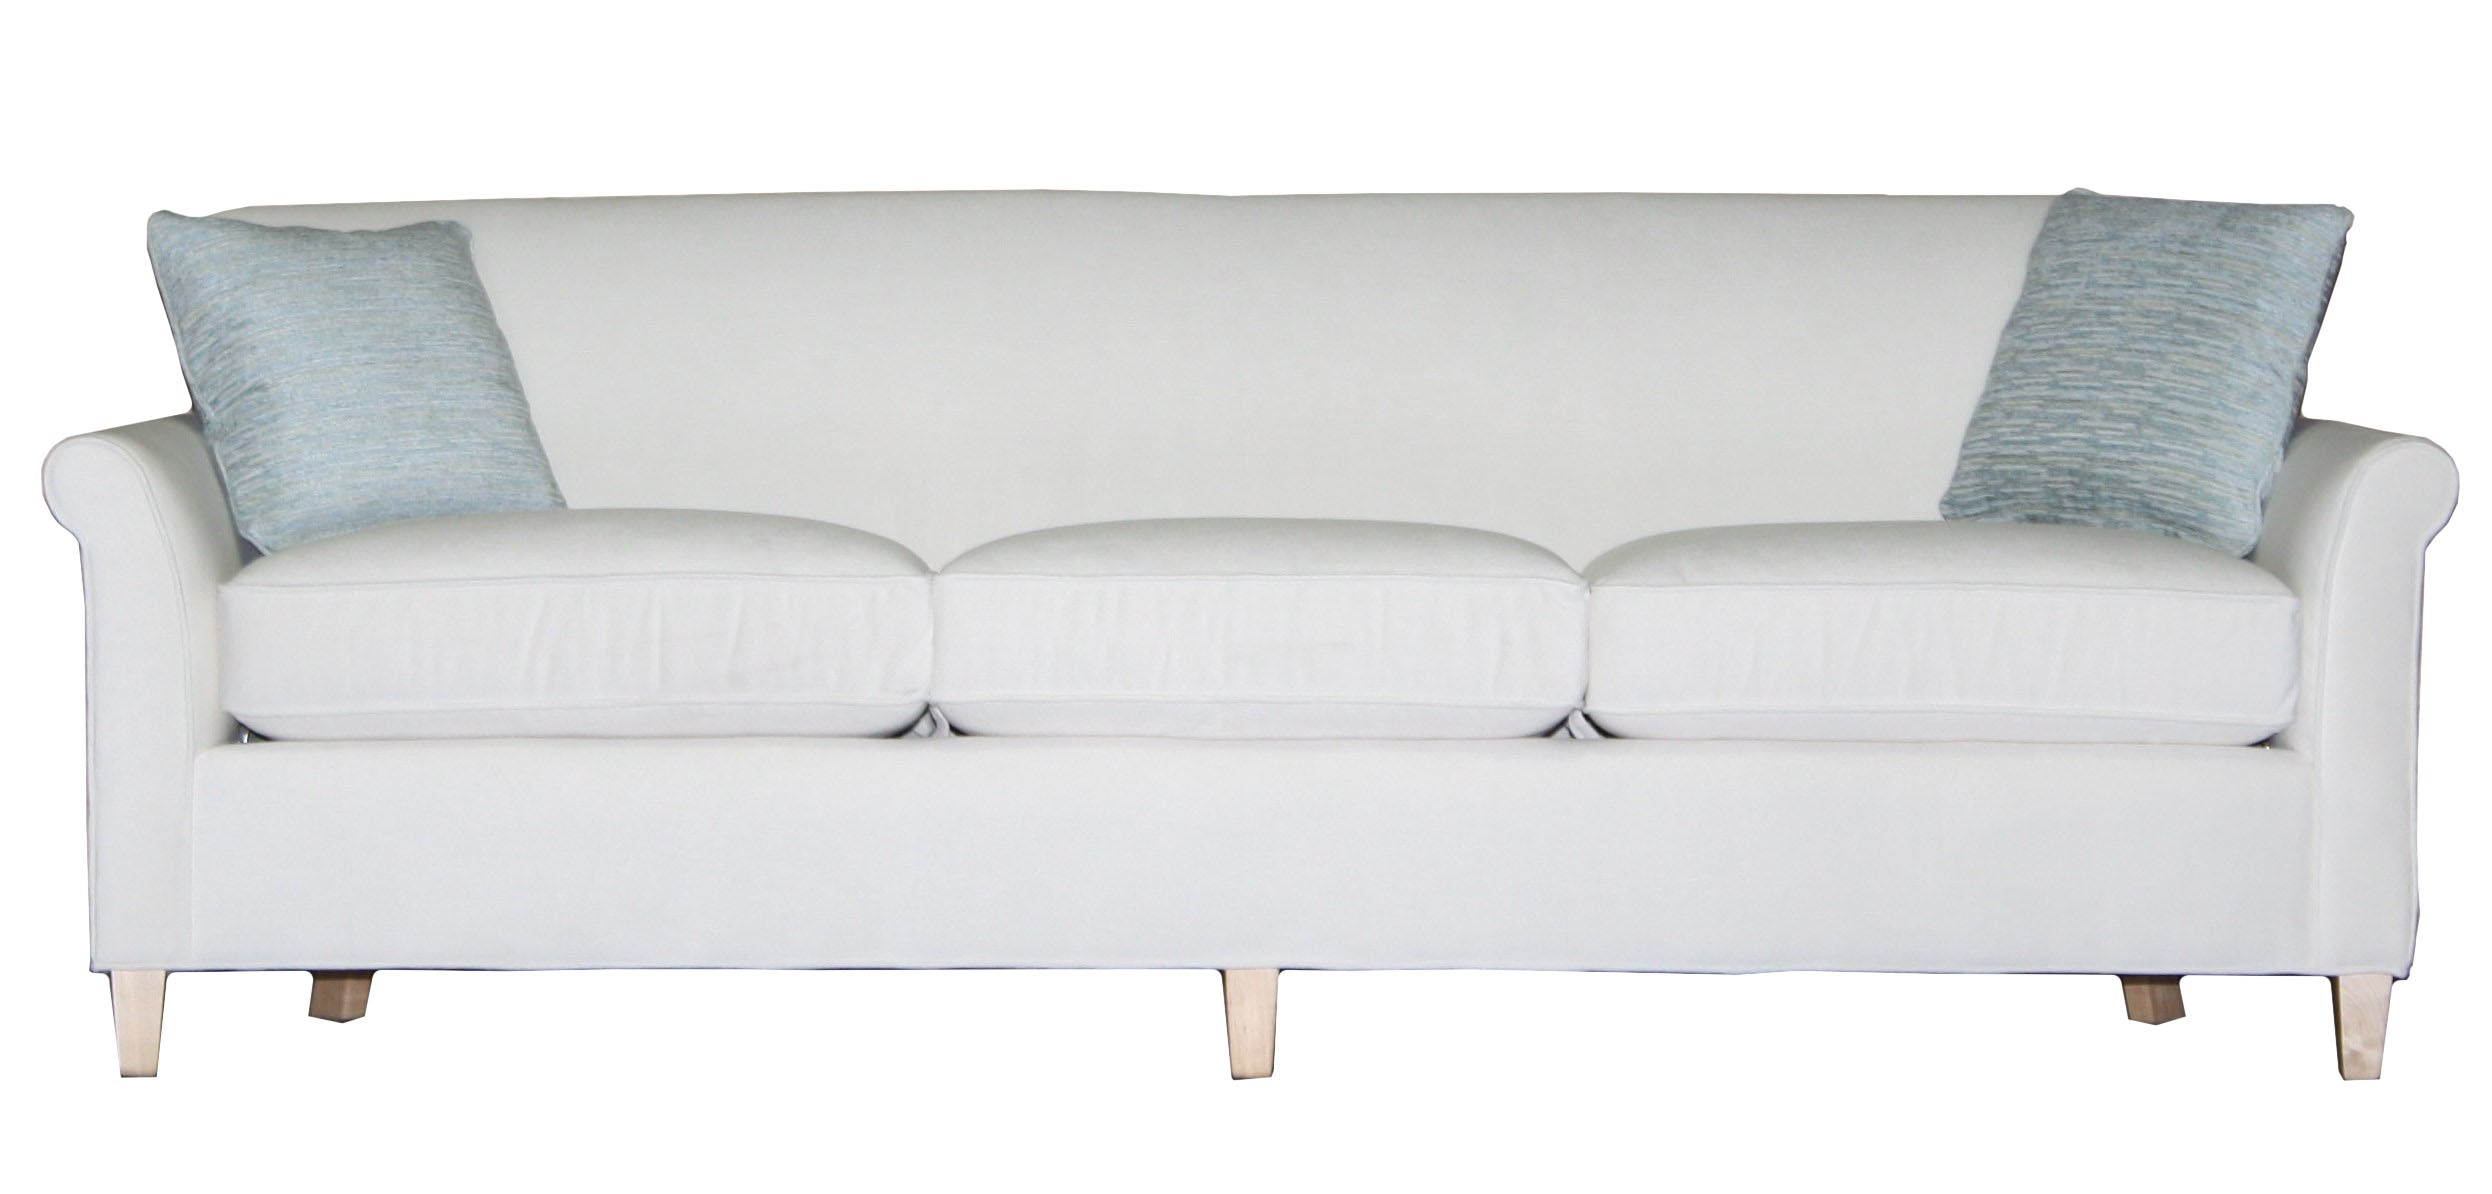 Charmant Fisher Non Toxic Longer Condo Sofa From Endicott Home In Maine   01 ...